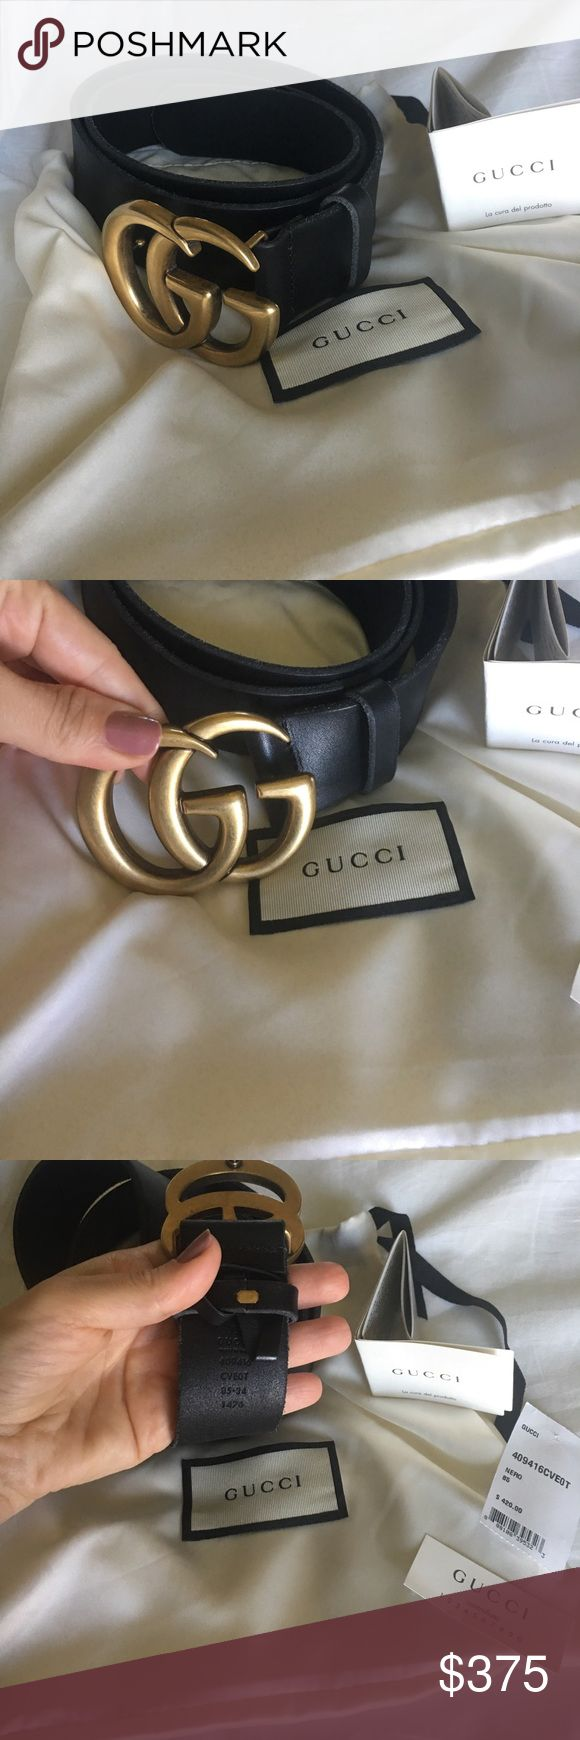 Authentic marmont Gucci belt Black with gold Gucci buckle in size 85 brand new with tags and dust bag. Bought from neiman Marcus for over $400 no low balls no trades 100% Authentic guaranteed Gucci Accessories Belts